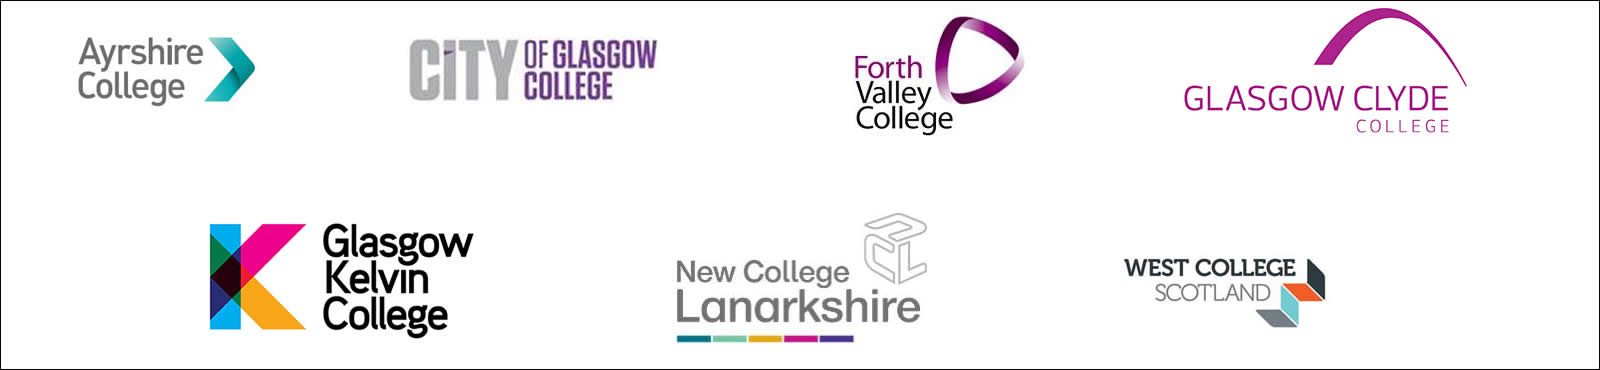 Engineering academy college partners logos - Ayrshire College, City of Glasgow College, Forth Valley College, Glasgow Clyde College, Glasgow Kelvin College, New College Lanarkshire, West College Scotland